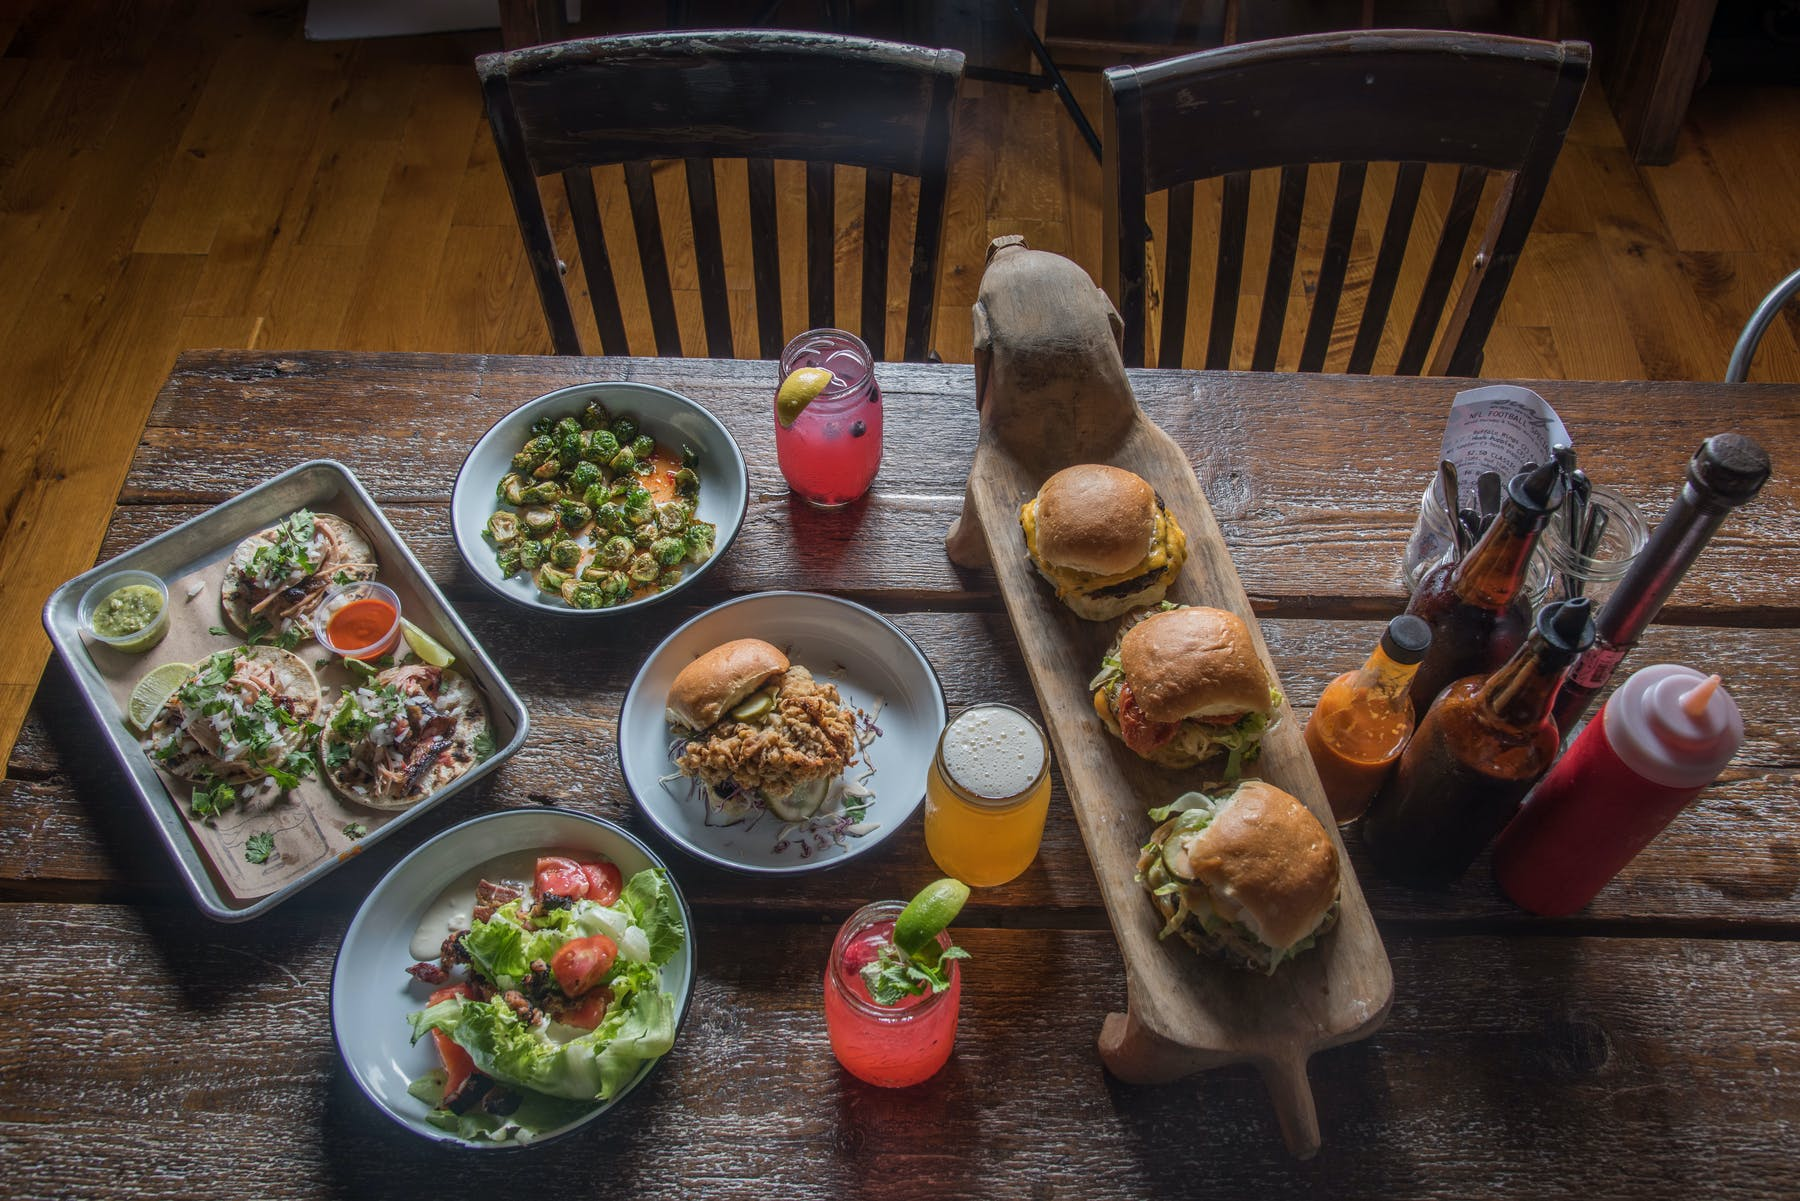 plates of burgers, drinks, and tacos on a table